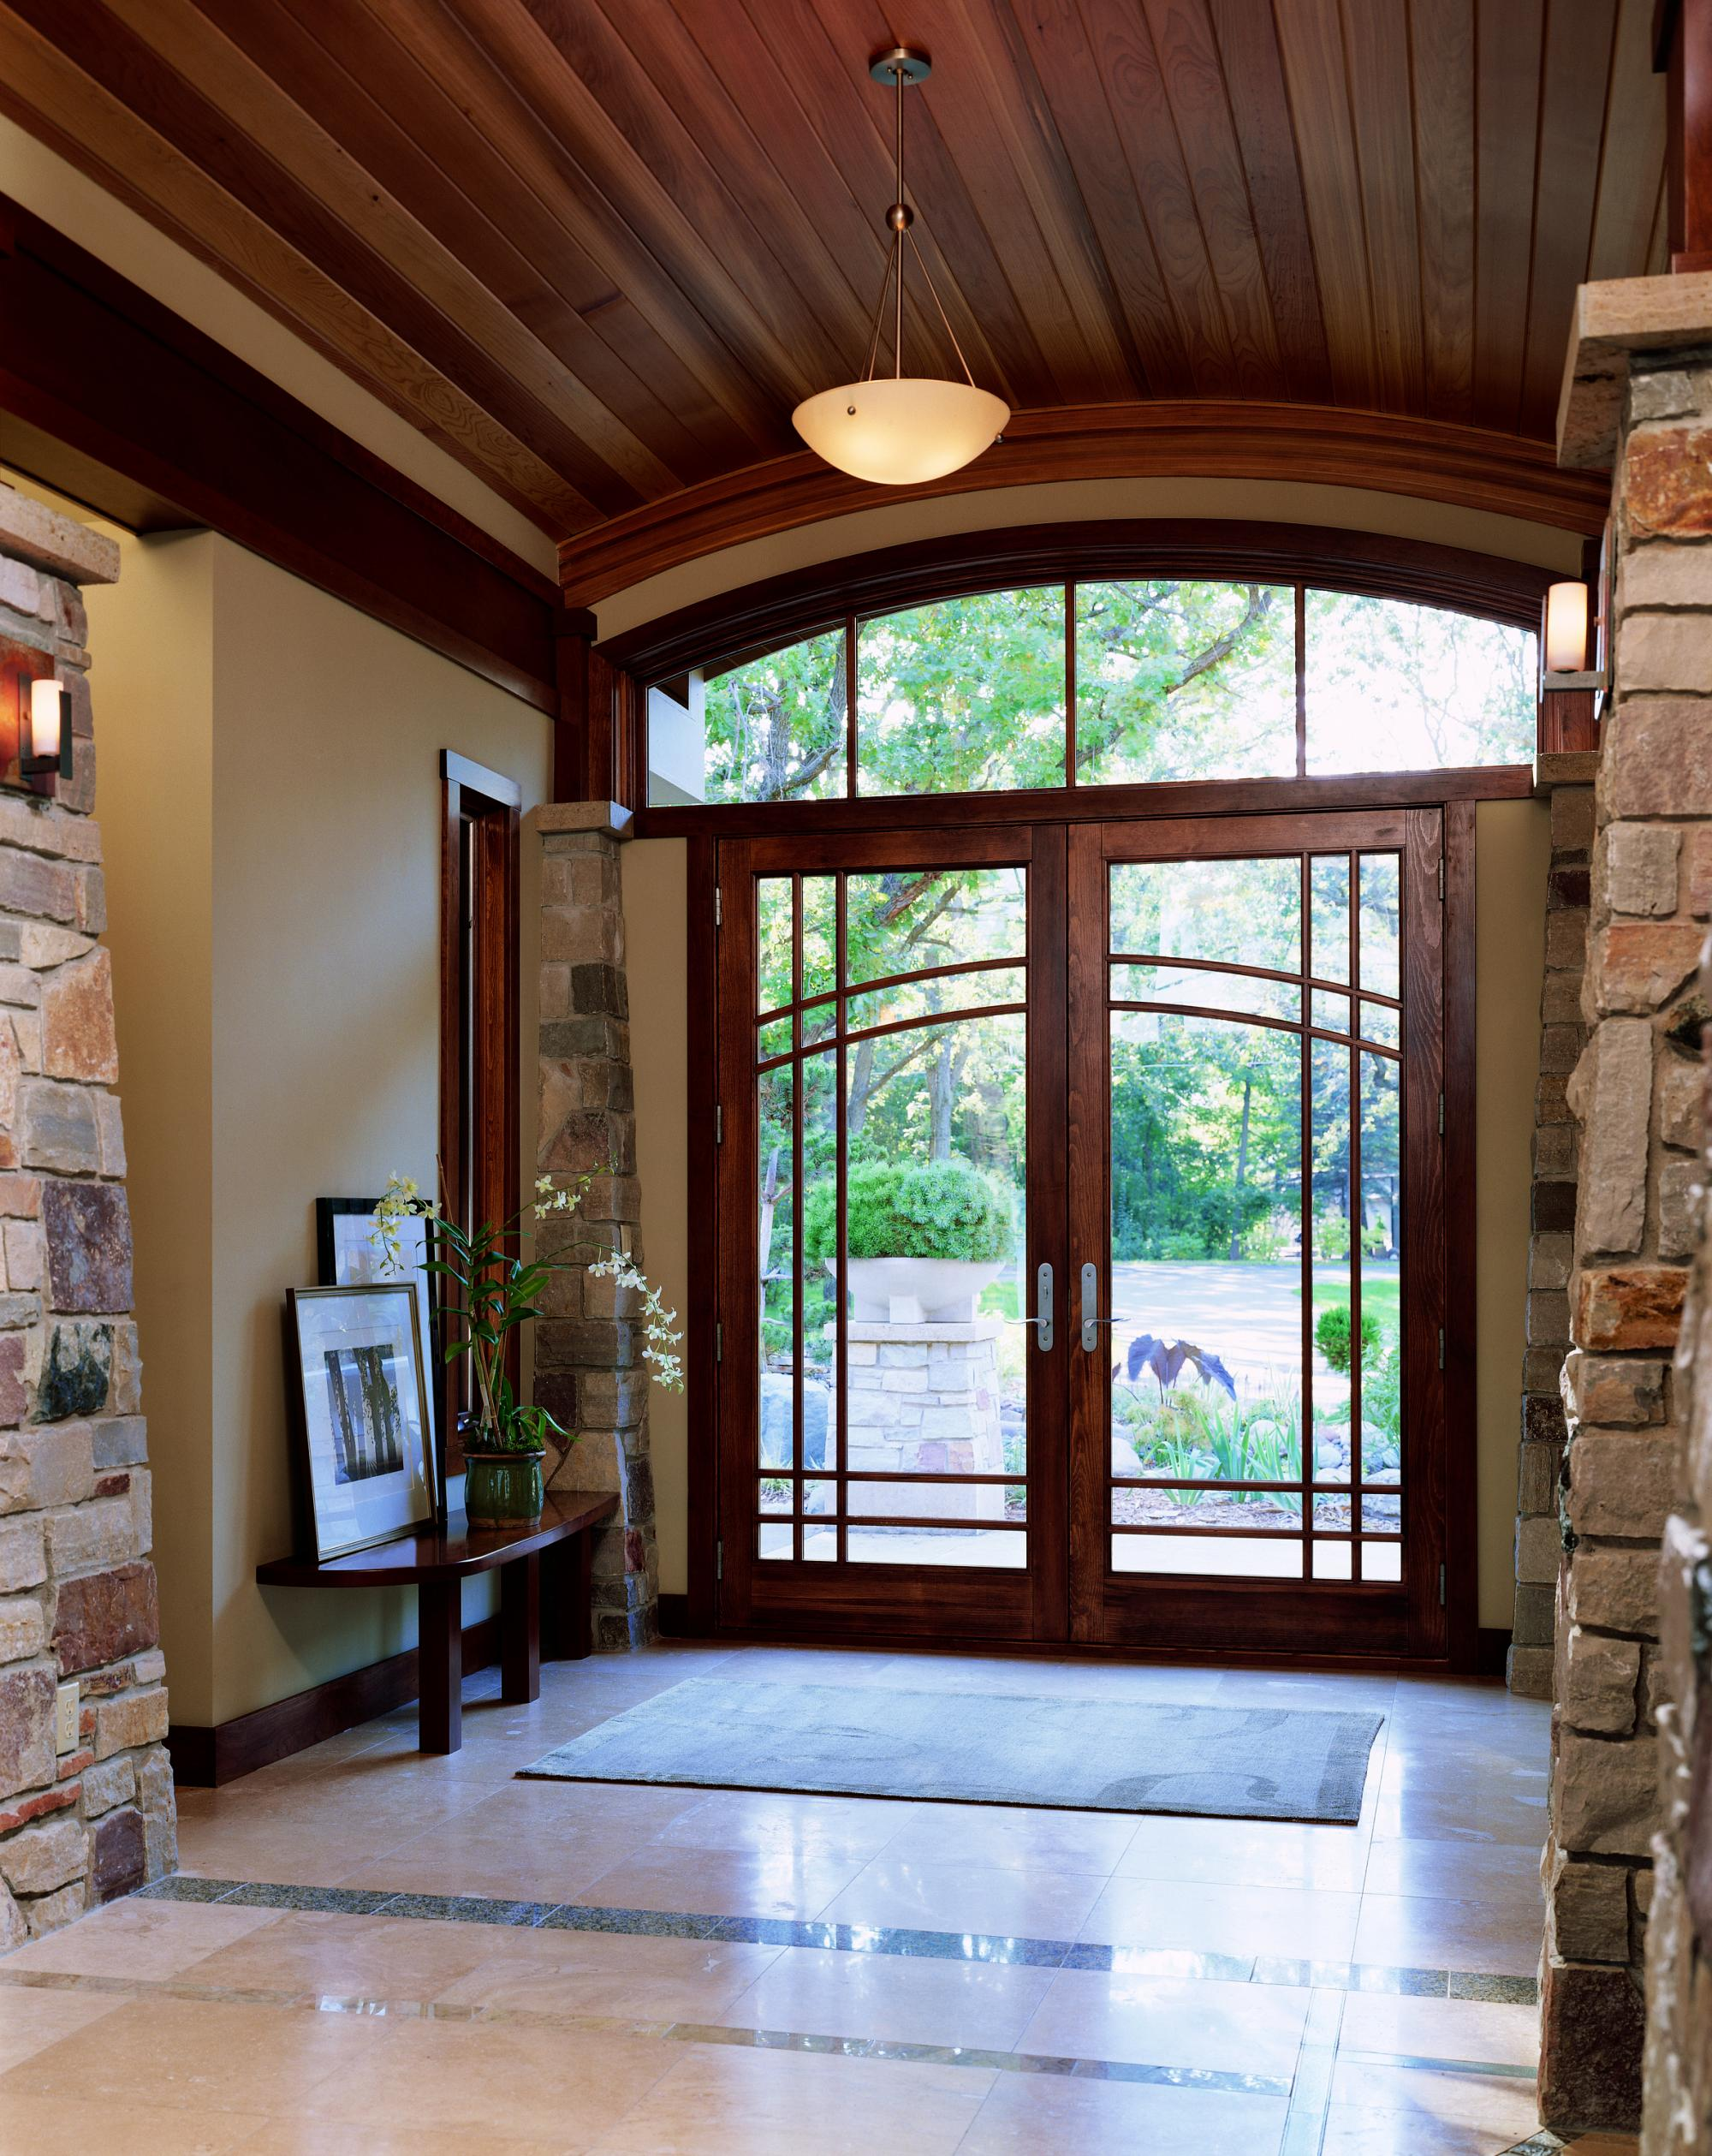 Gallery elmsford ny authentic window design for Marvin ultimate windows cost